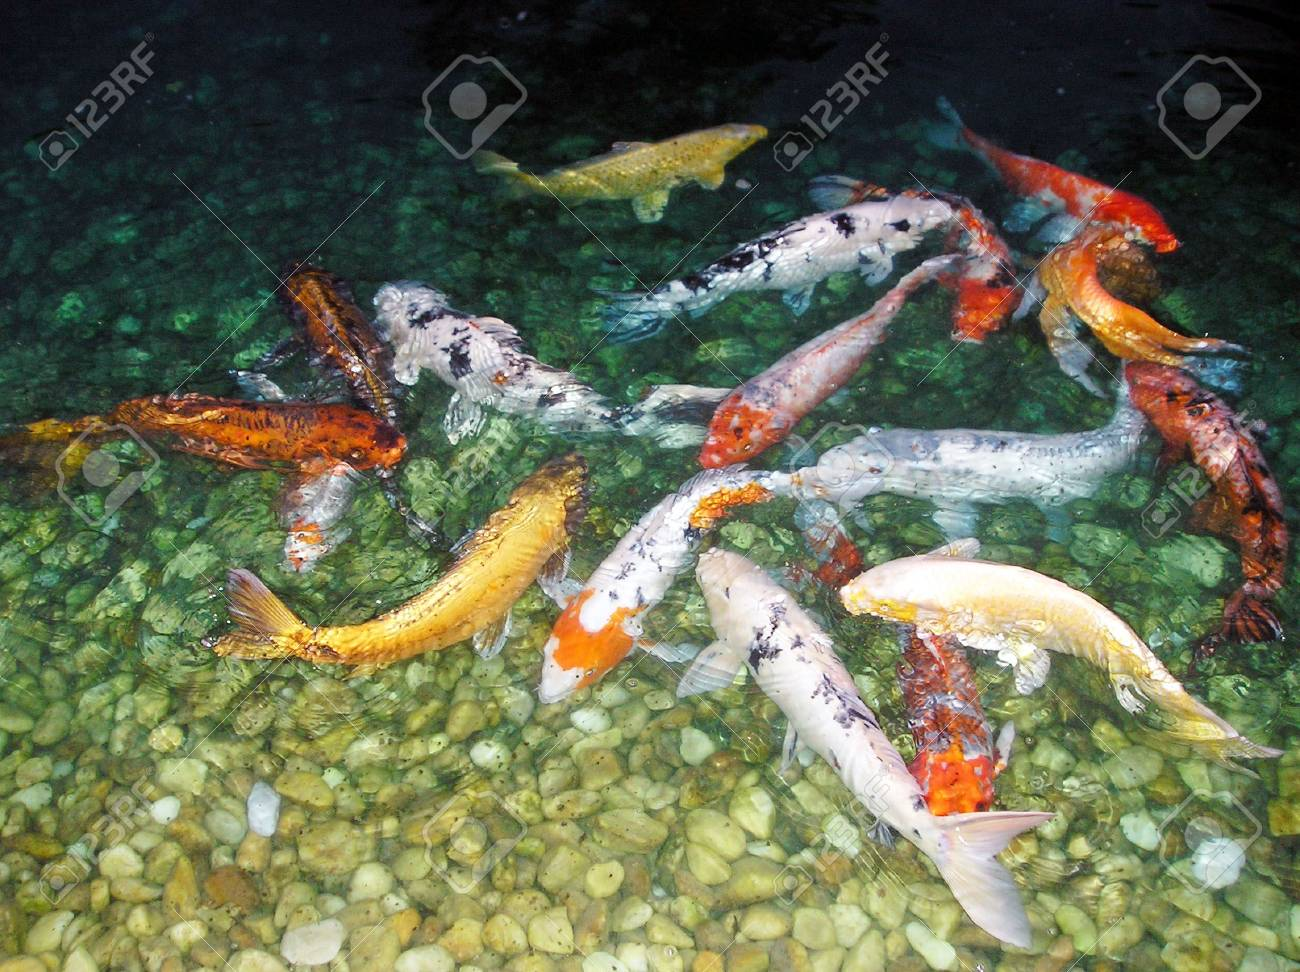 Colorful Fish Stock Photo, Picture And Royalty Free Image. Image 739283.